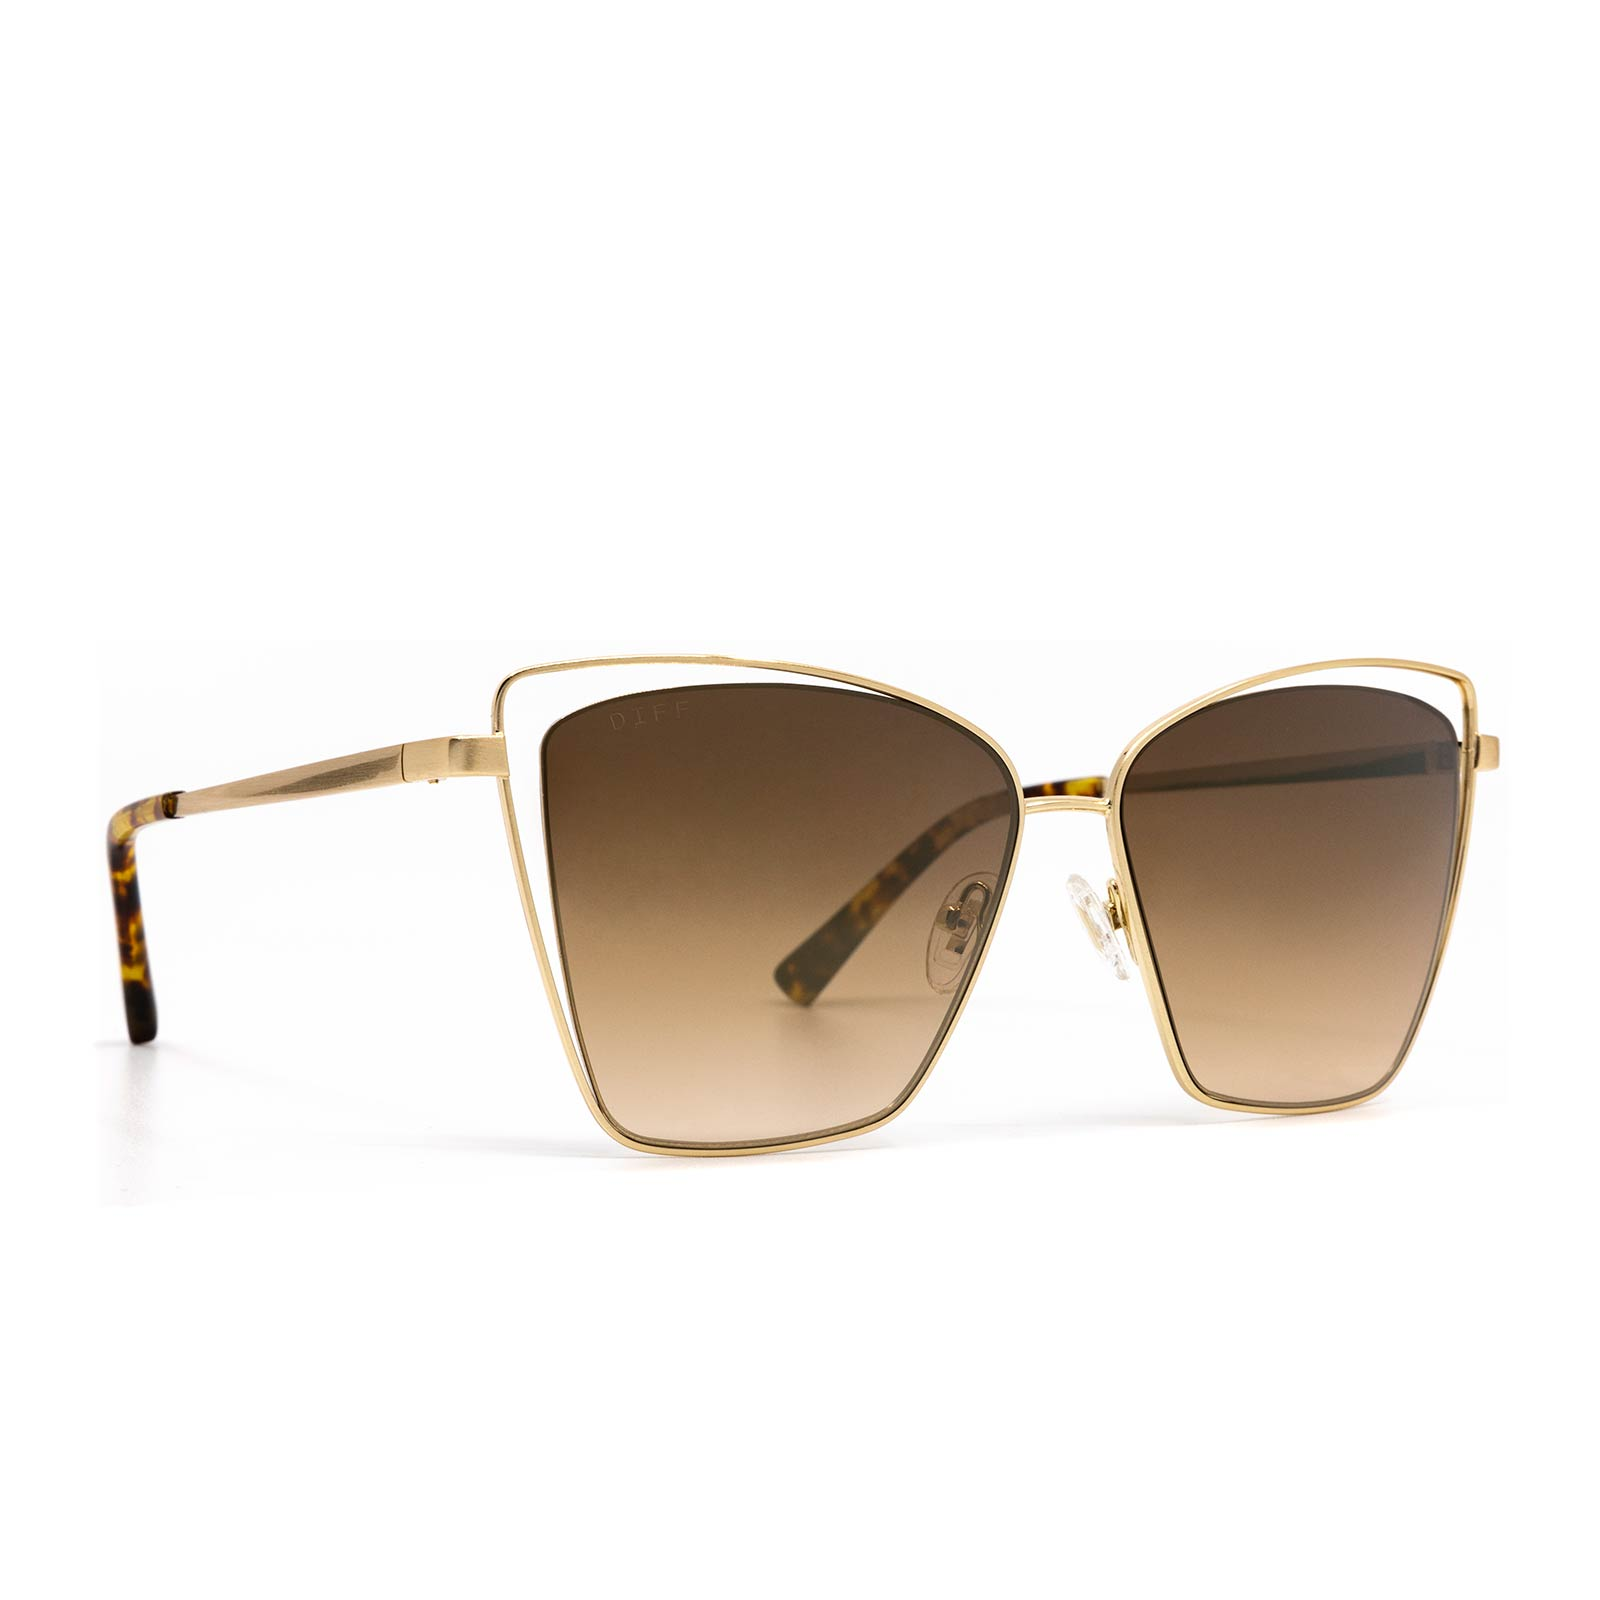 Becky III sunglasses with brushed gold frame and brown gradient lens-angle view